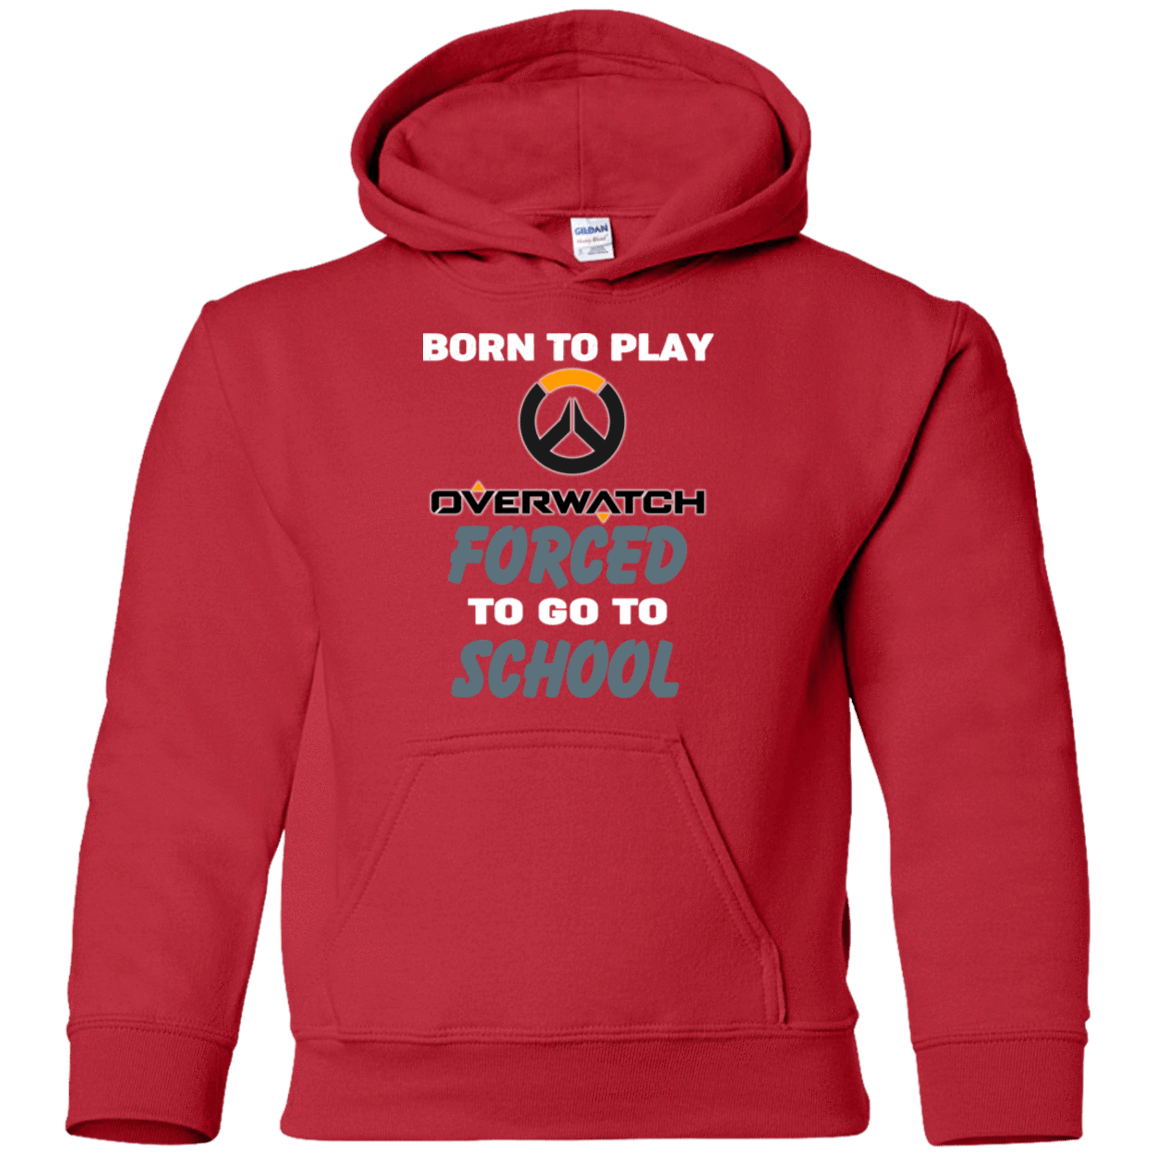 Born To Play Overwatch Forced To Go To School 59-331-74209661-1258 - Tee Ript